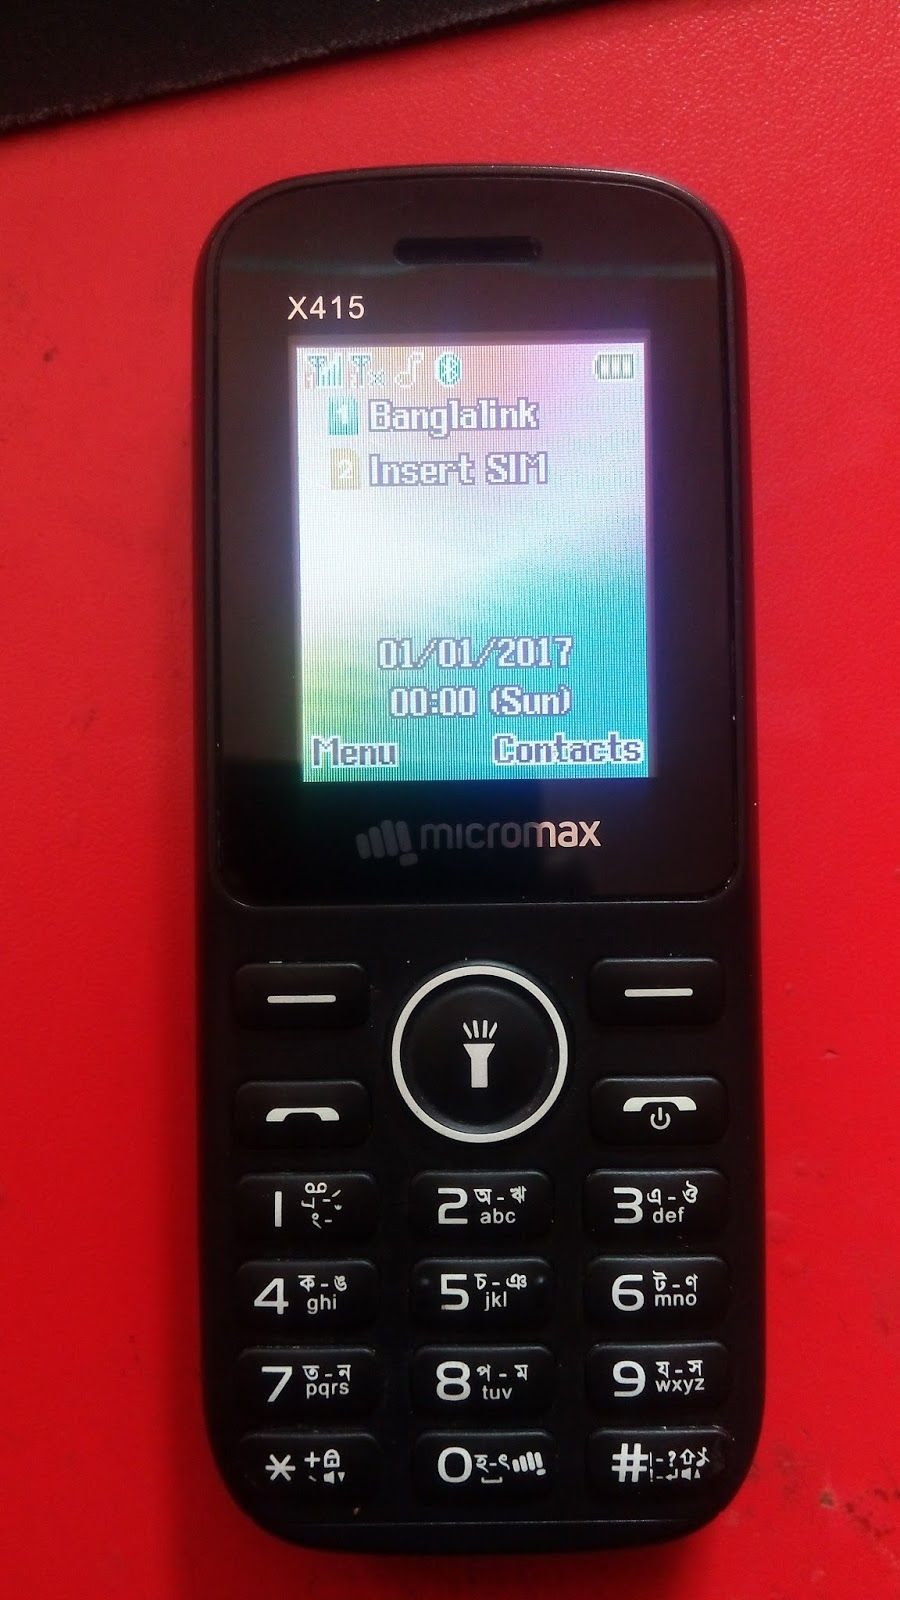 Micromax X415 | Any Firmware | Filing, Mp3 player, Software